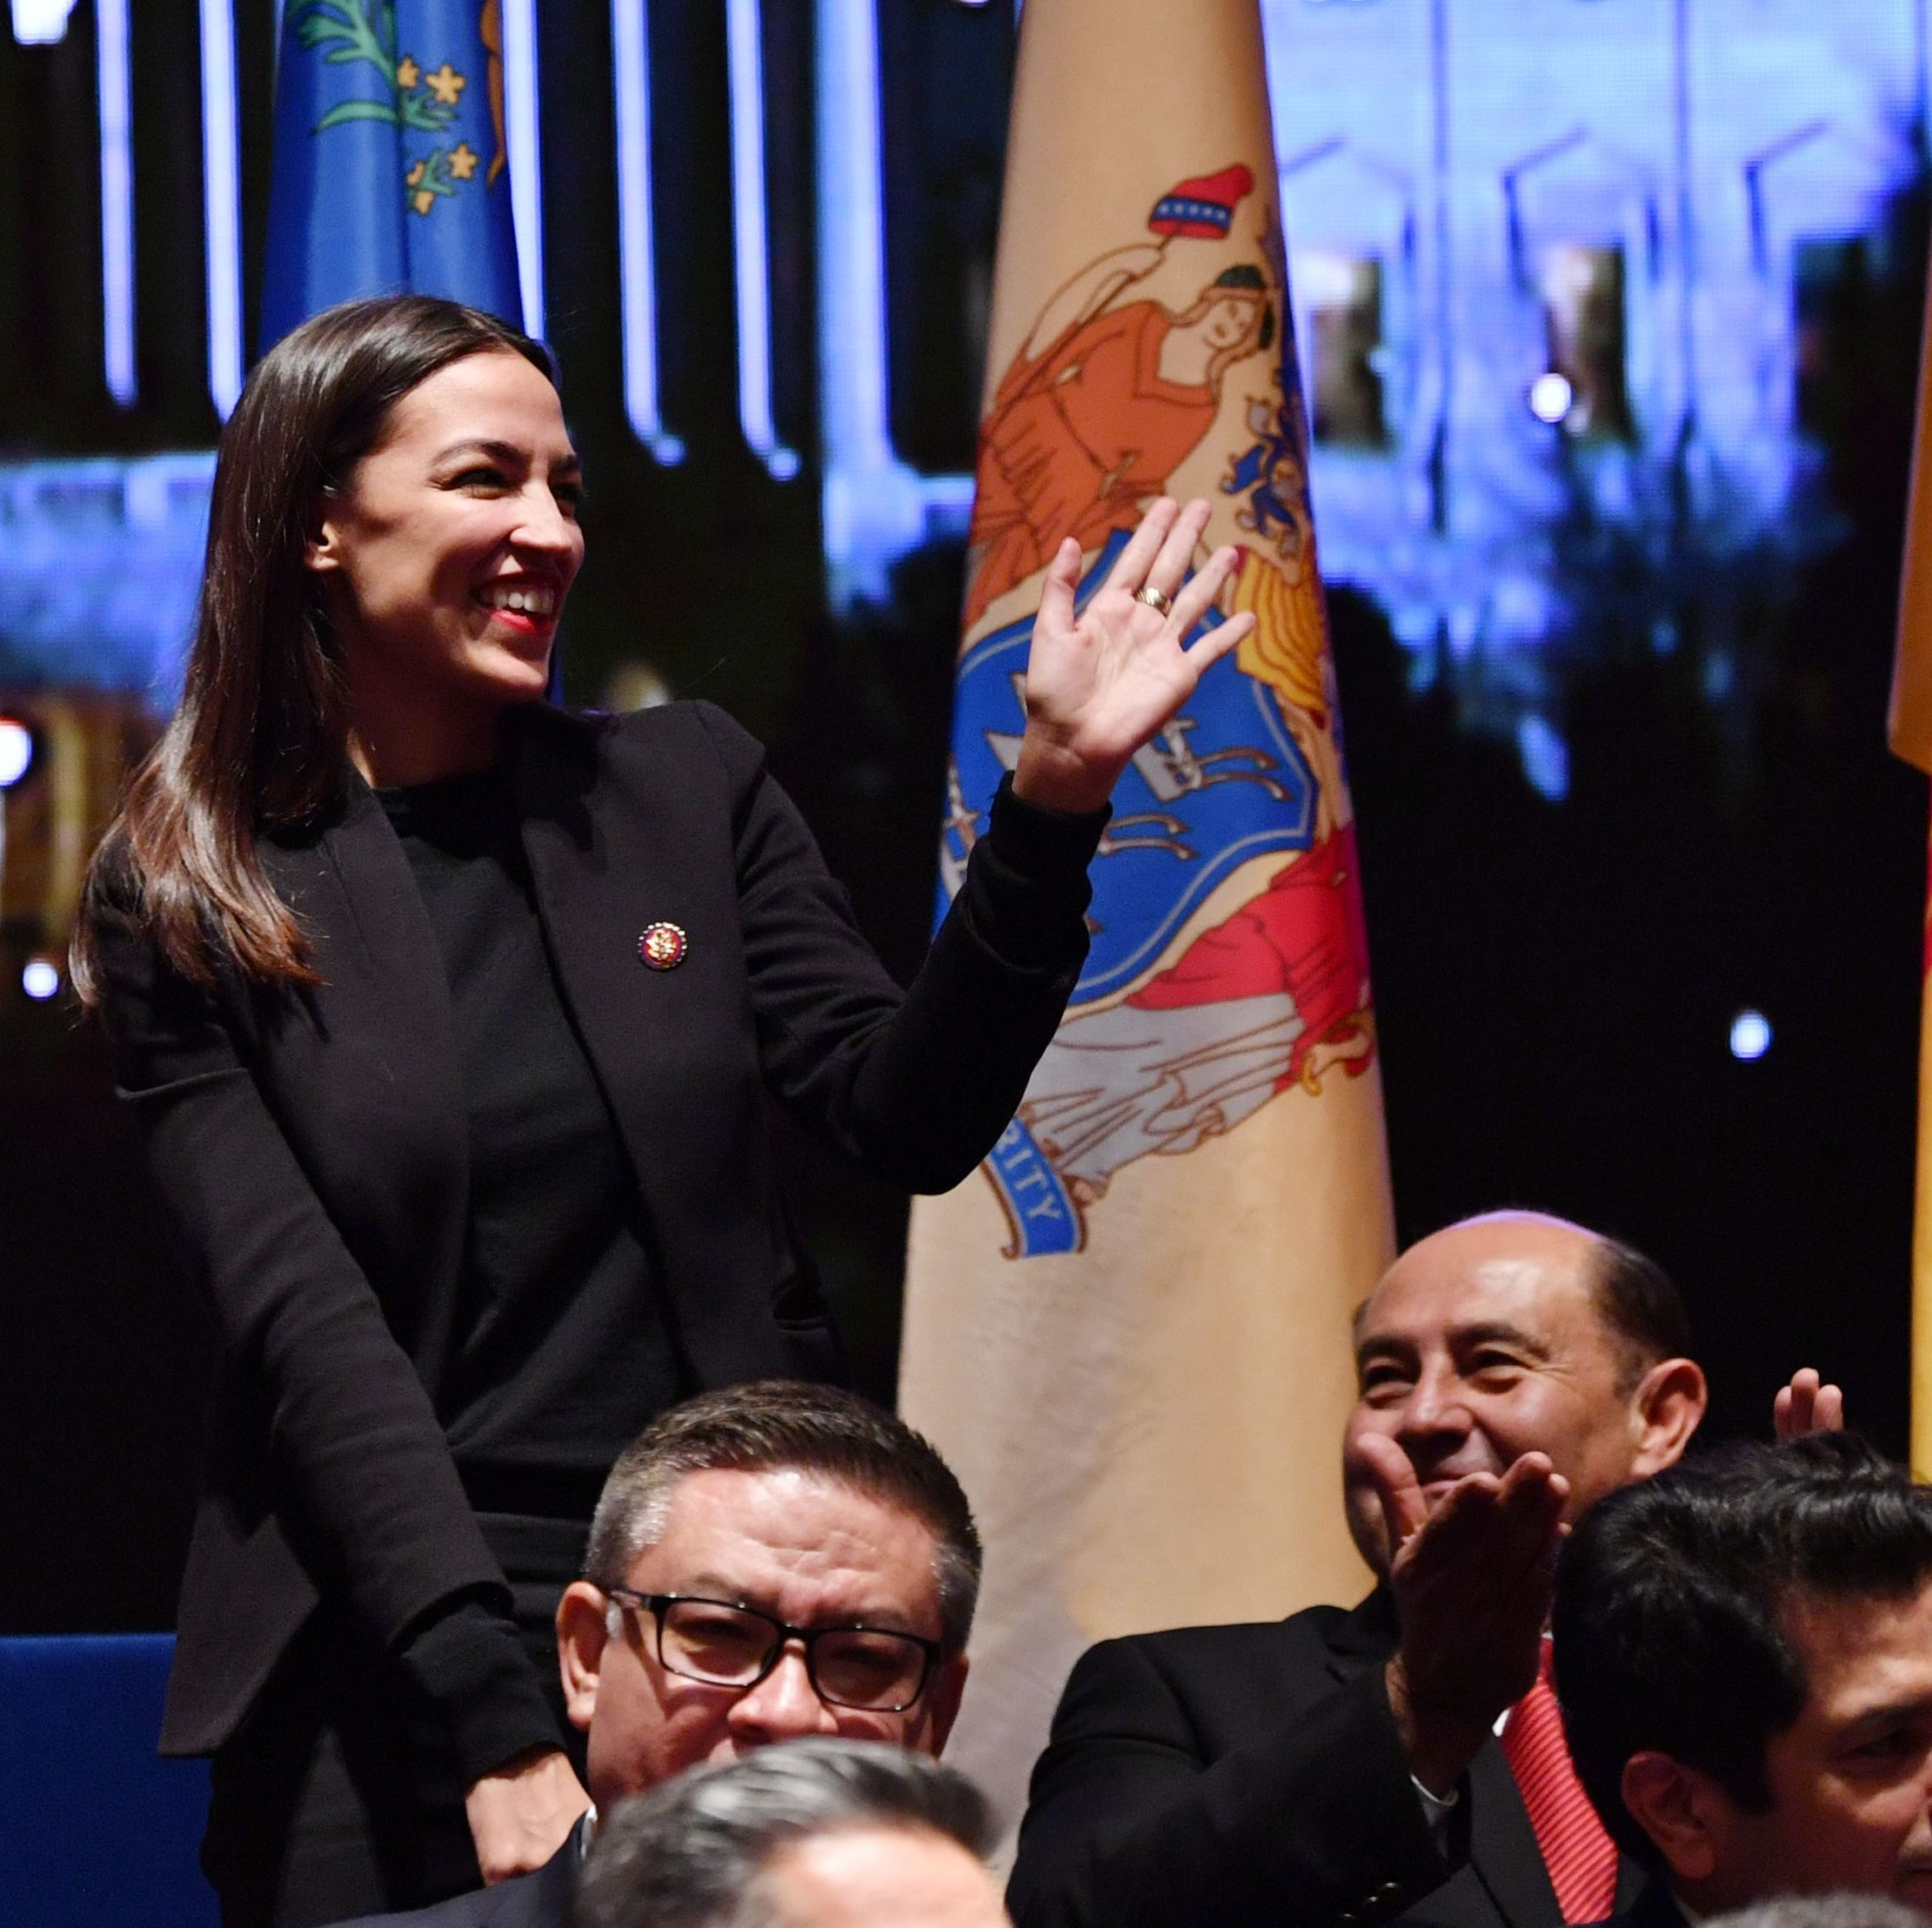 New York Rep. Alexandria Ocasio-Cortez attends a swearing-in ceremony and welcome reception for new Hispanic members of the U.S. Congress in Washington, D.C., on January 9, 2019.